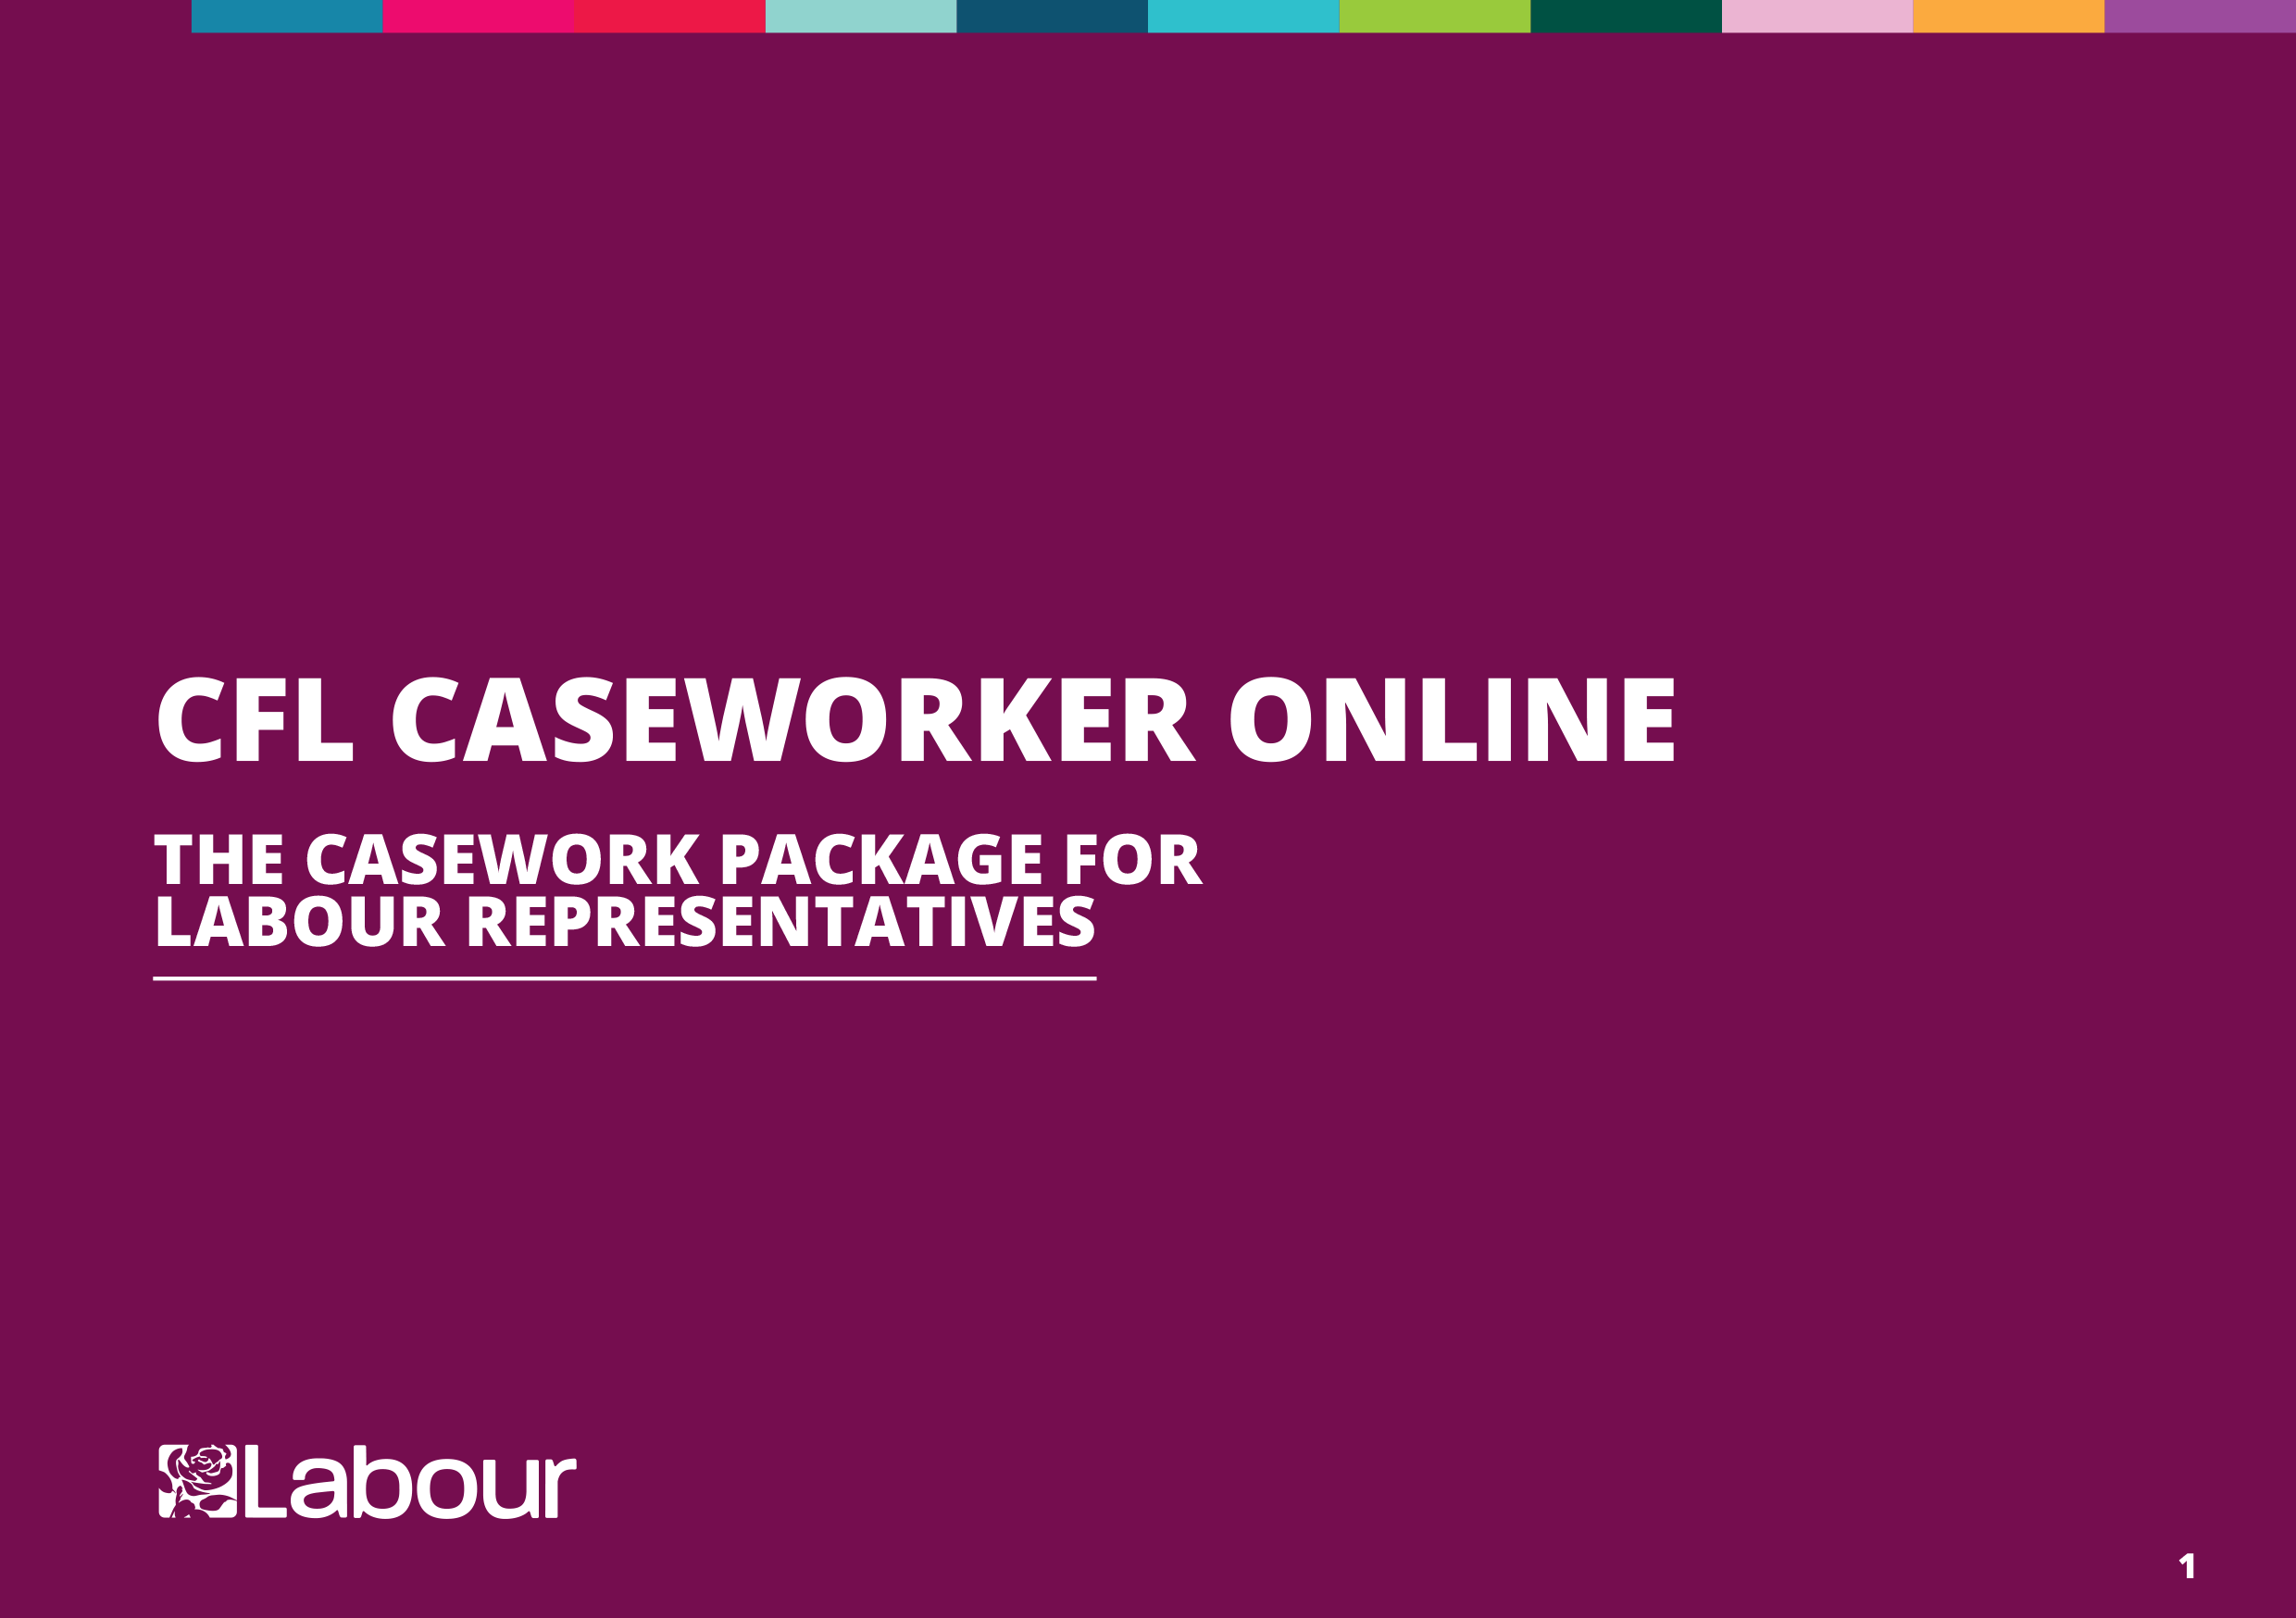 Computing for Labour Caseworker Online-1